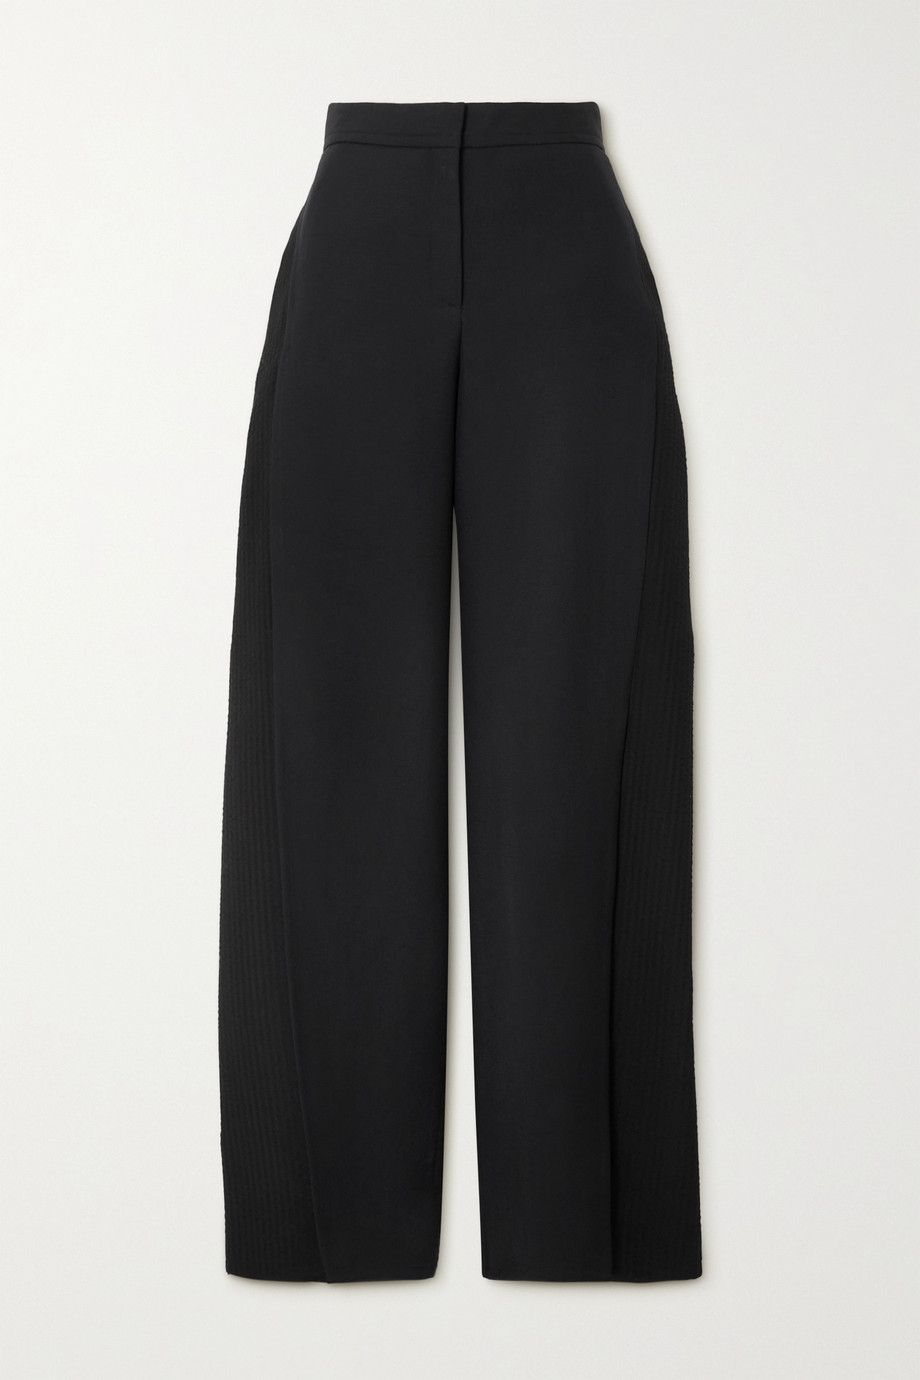 LOEWE Paneled wool and seersucker wide-leg pants